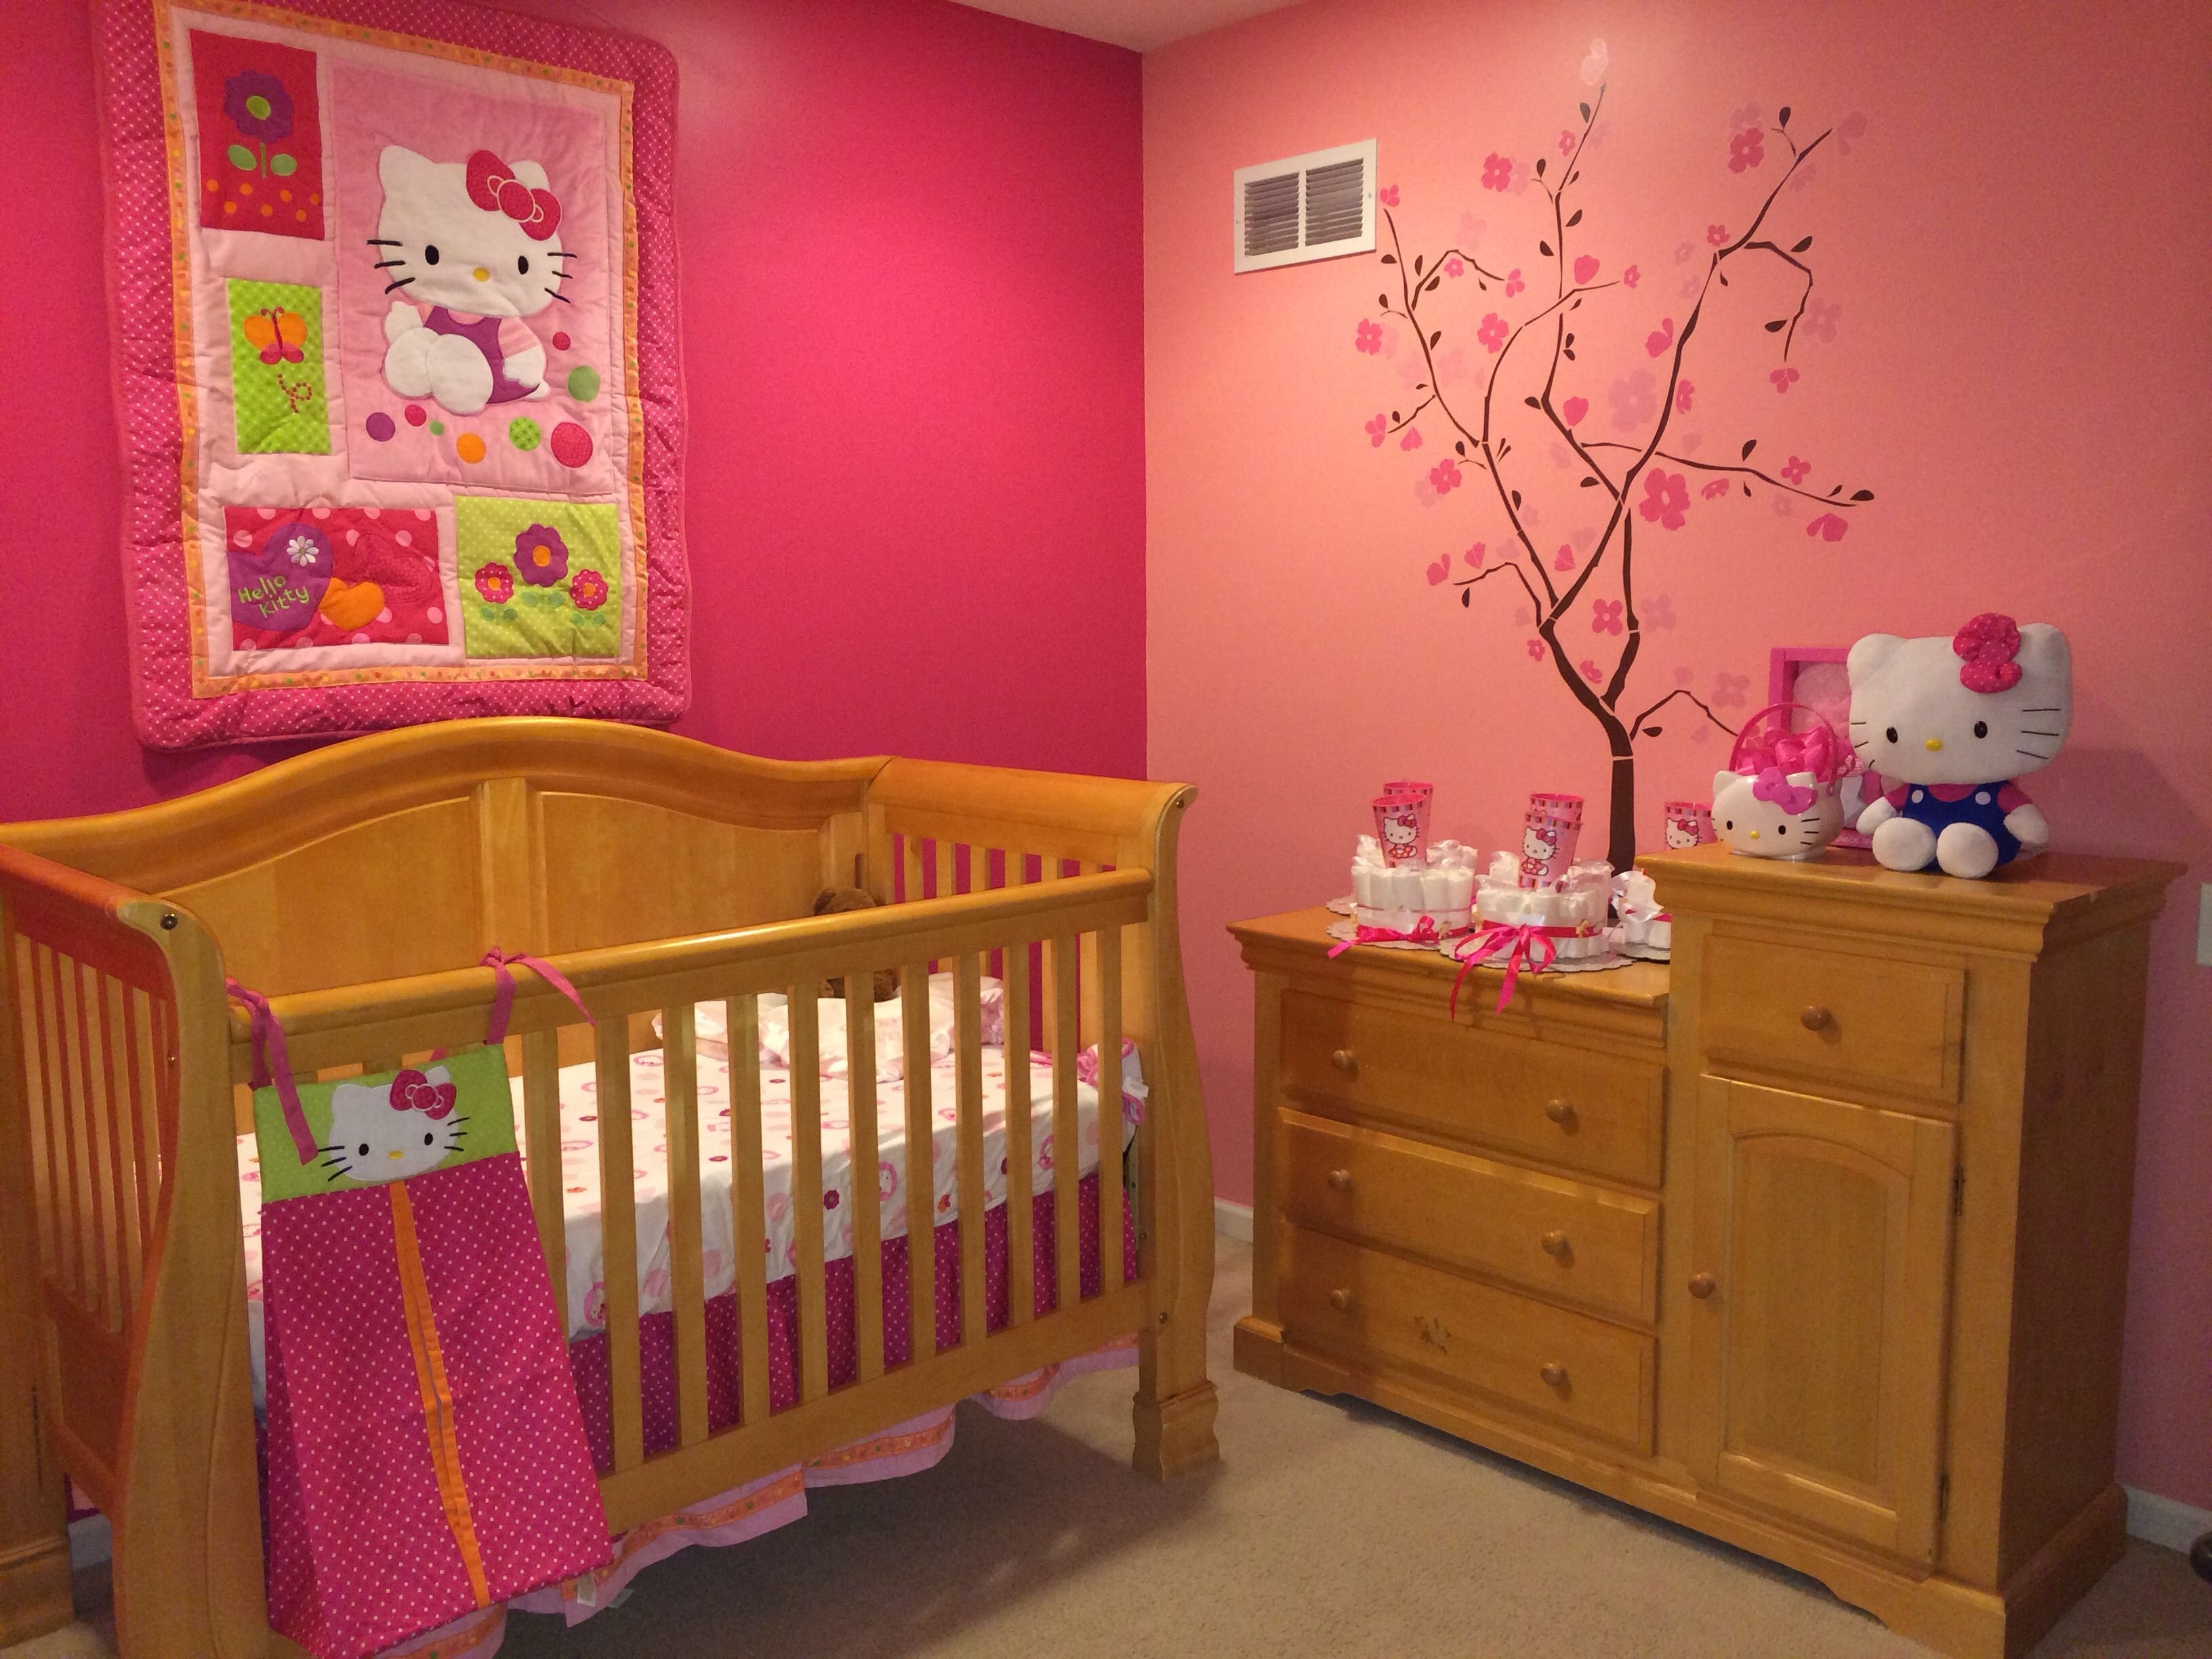 Bedrooms for girls hello kitty - Hello Kitty Baby Room